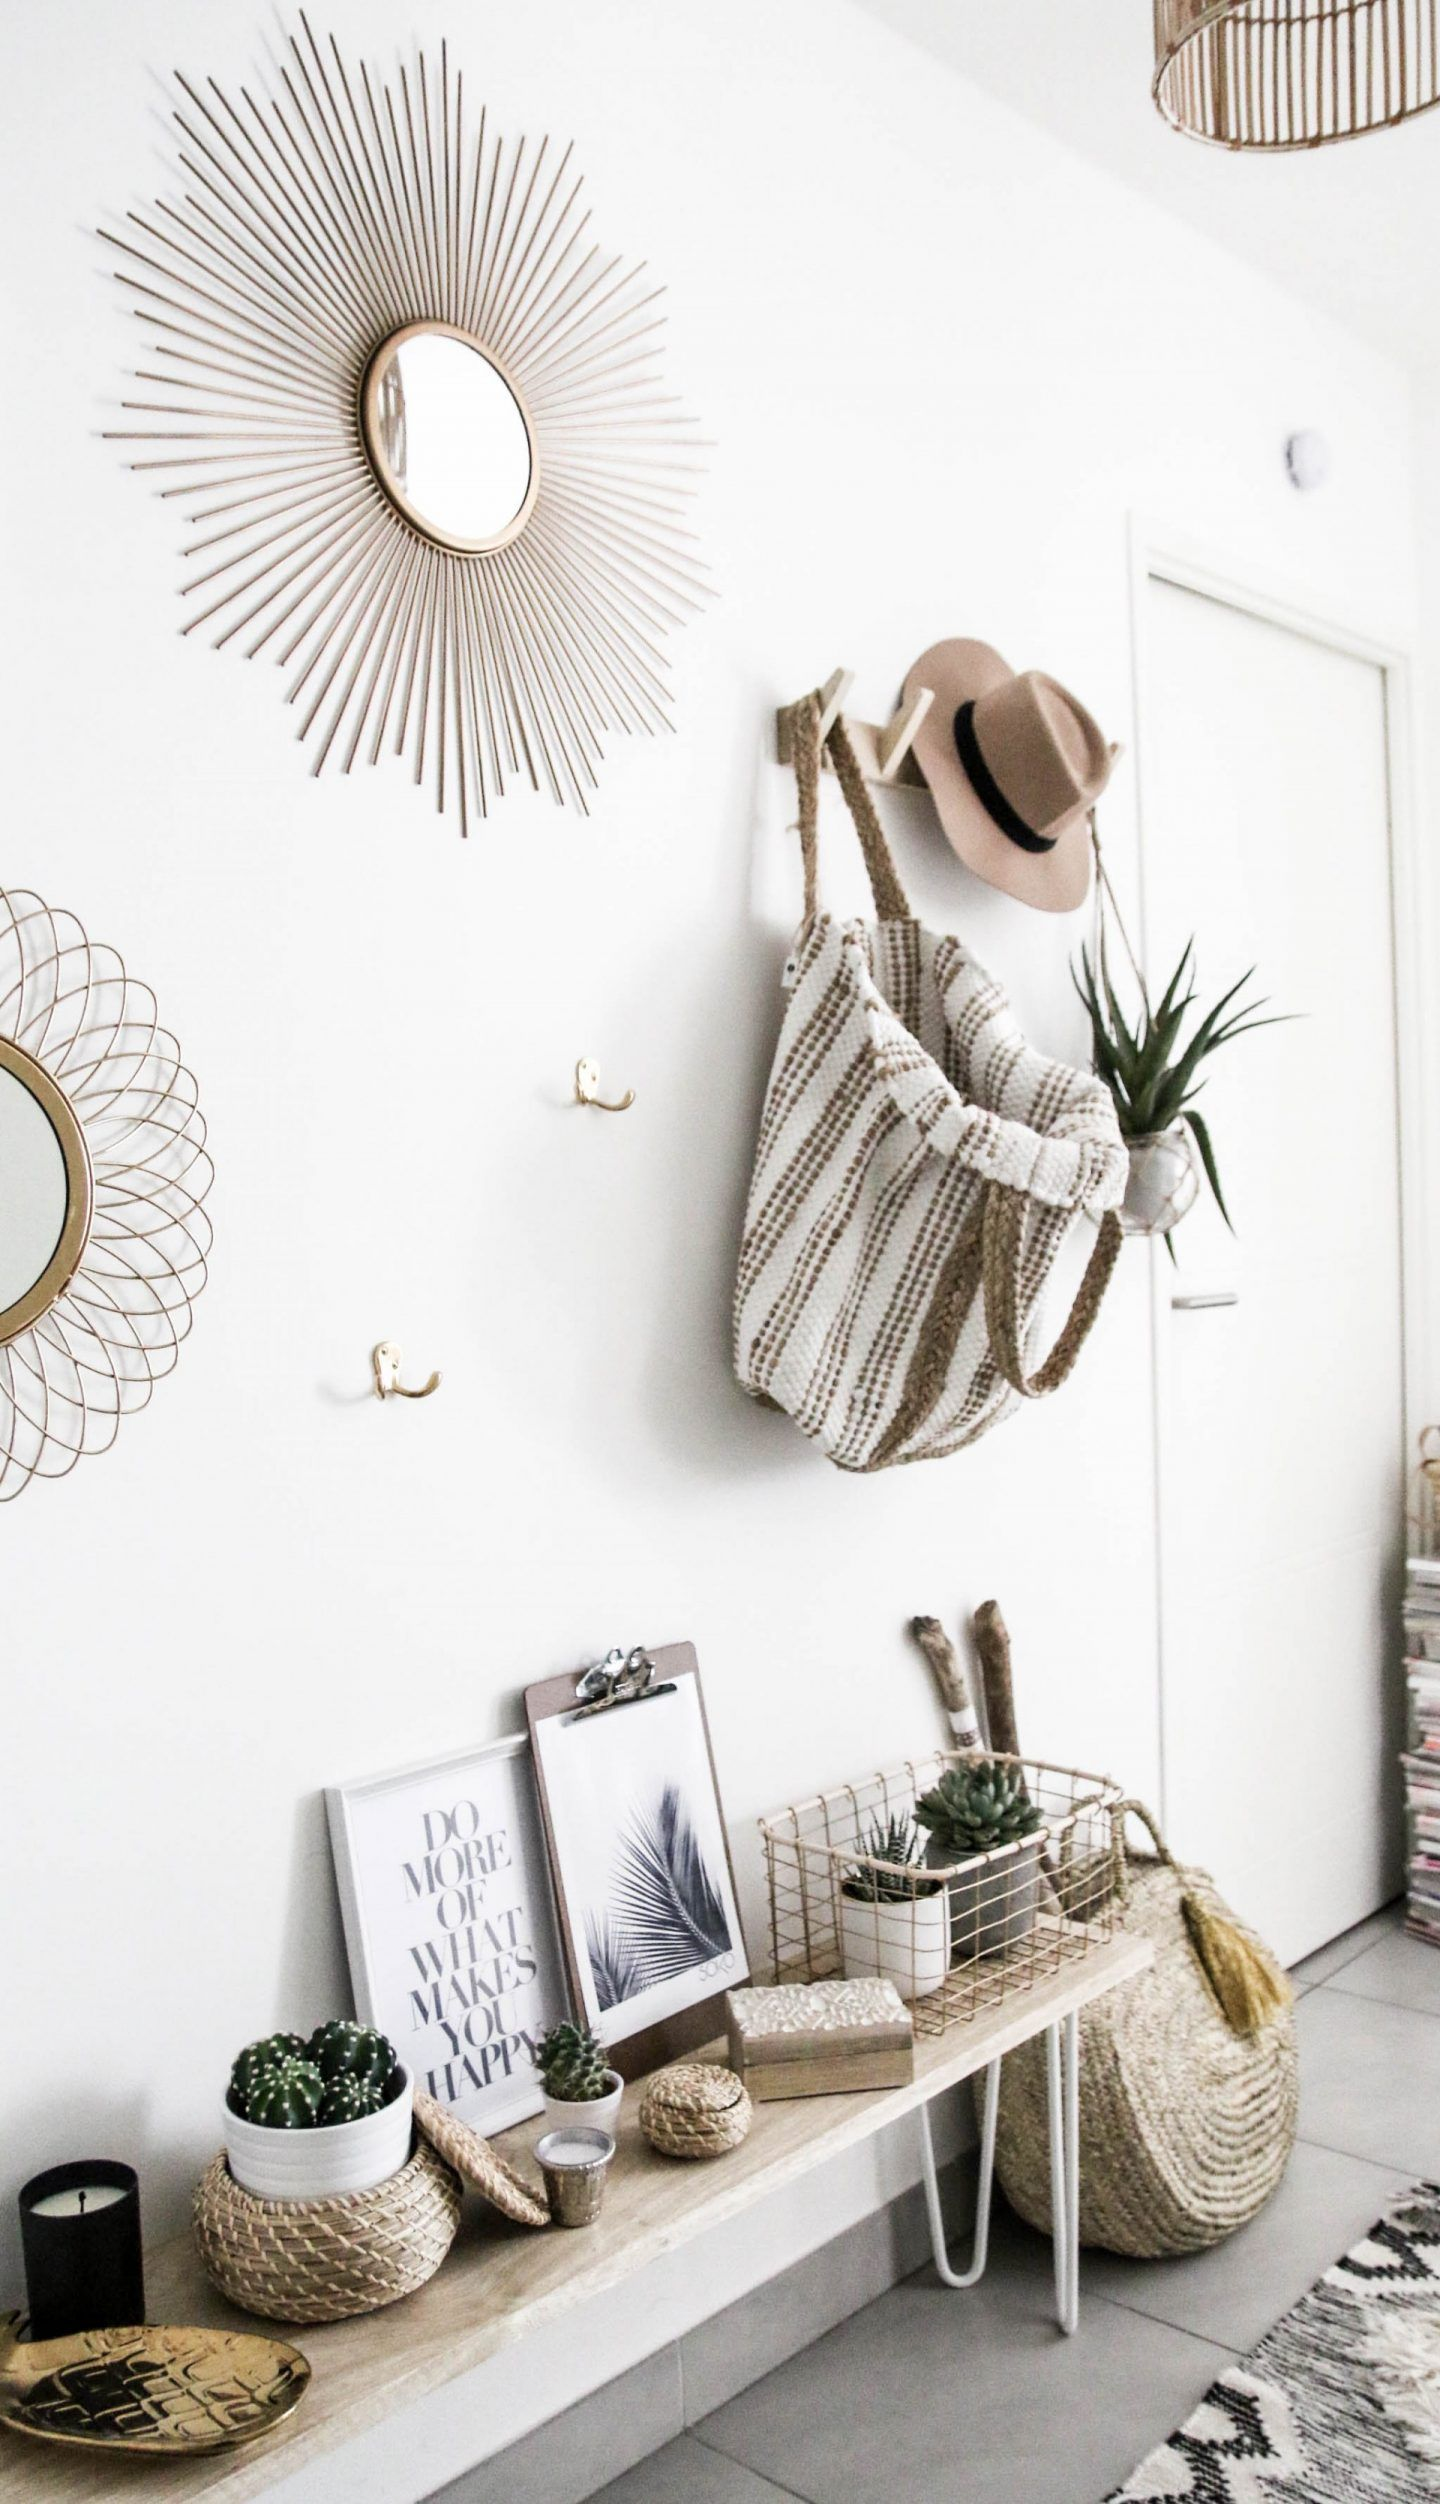 decoration-entree-tendance en 2019 | Déco maison, Decoration ...